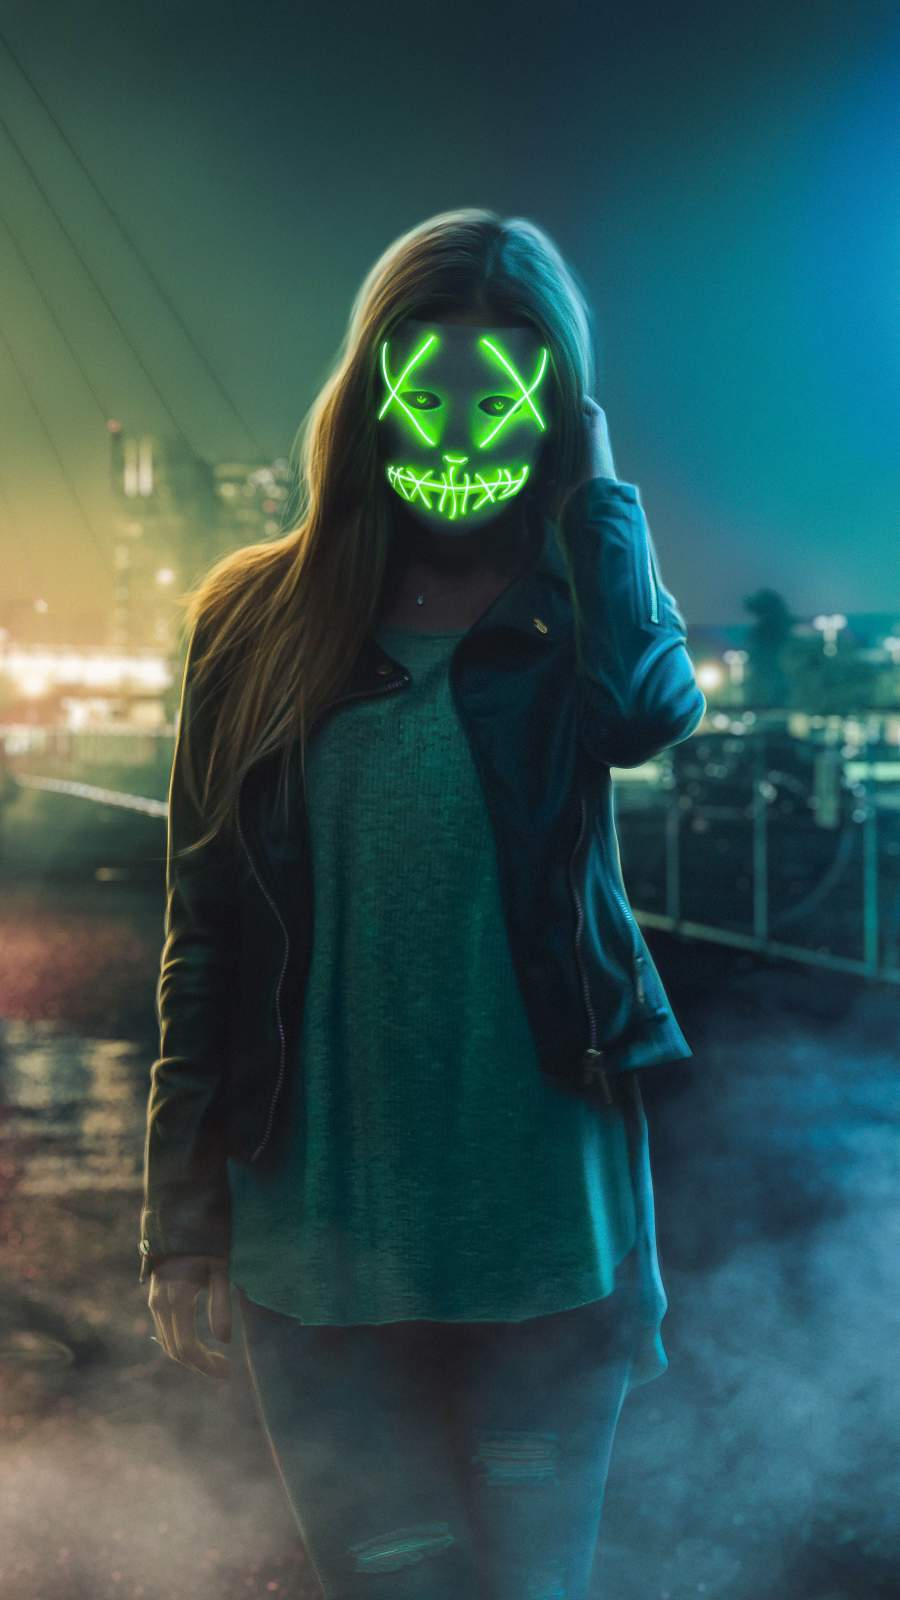 Neon Stitched Mask Girl